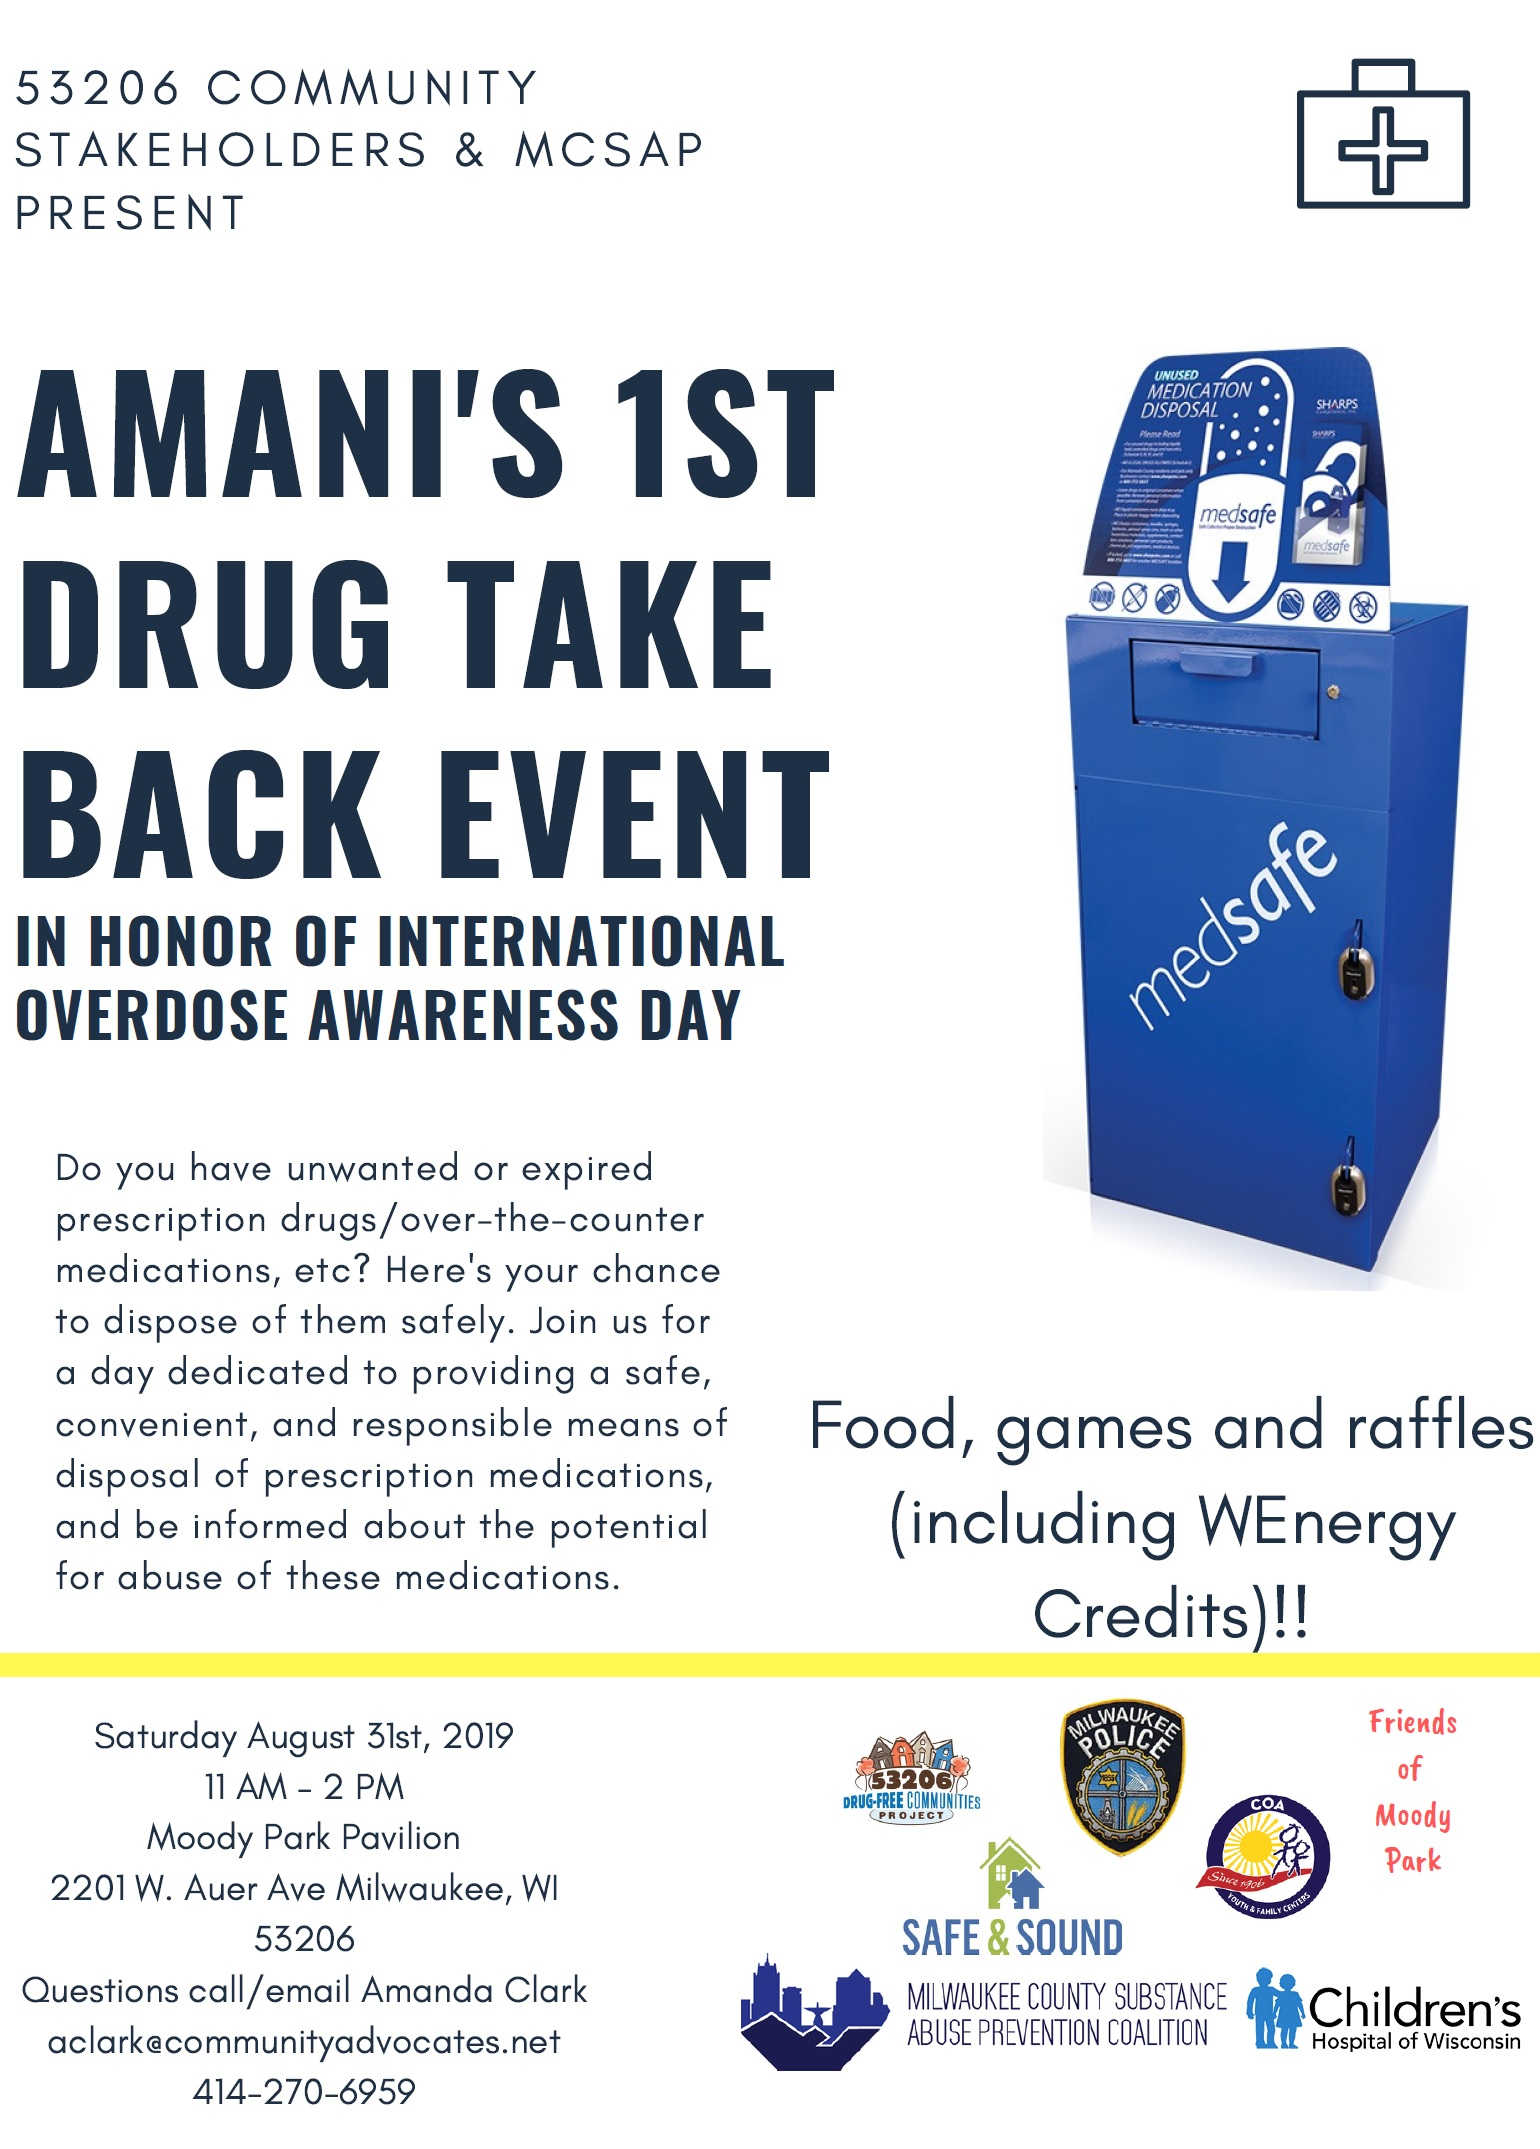 Amani Residents Ask for Drug Take-Back Opportunity & 53206 Stakeholders and MCSAP Respond with August 31 Event in Moody Park